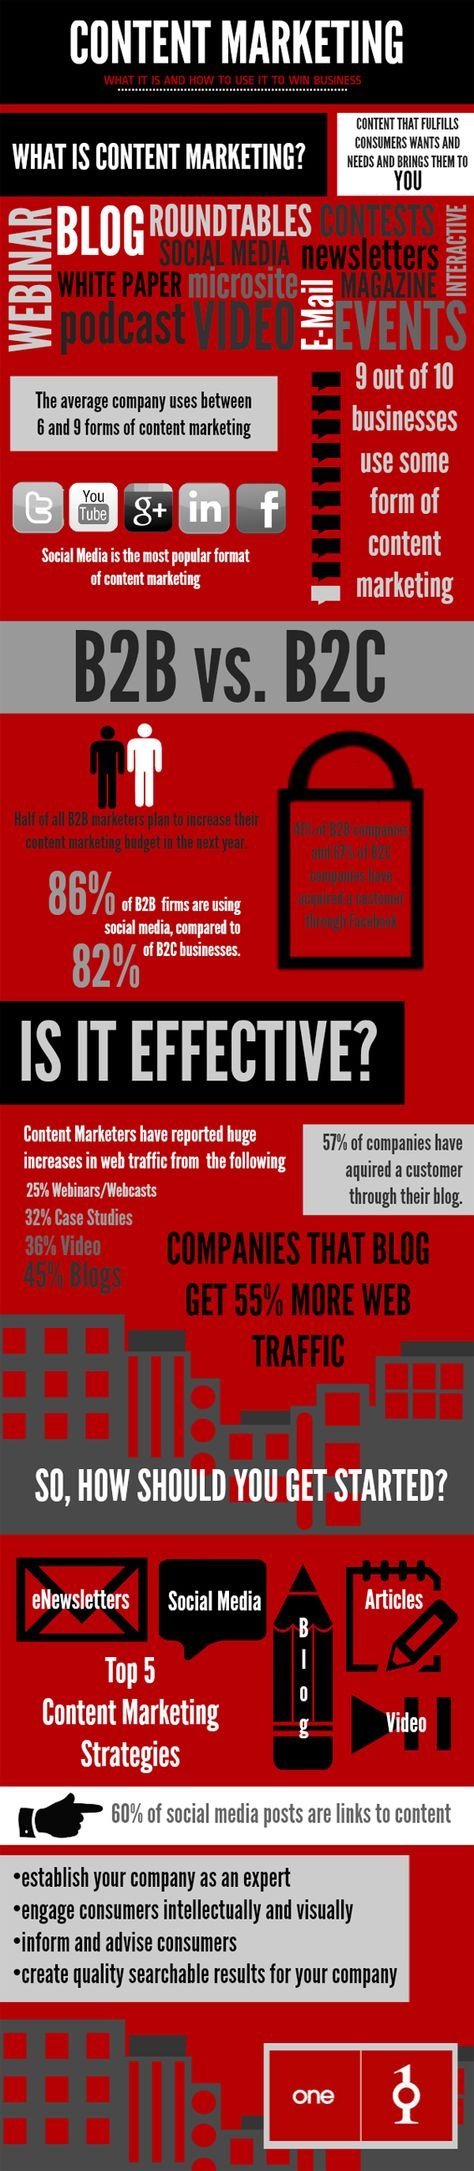 Content Marketing Analysis [INFOGRAPH] - The Social Media Hat